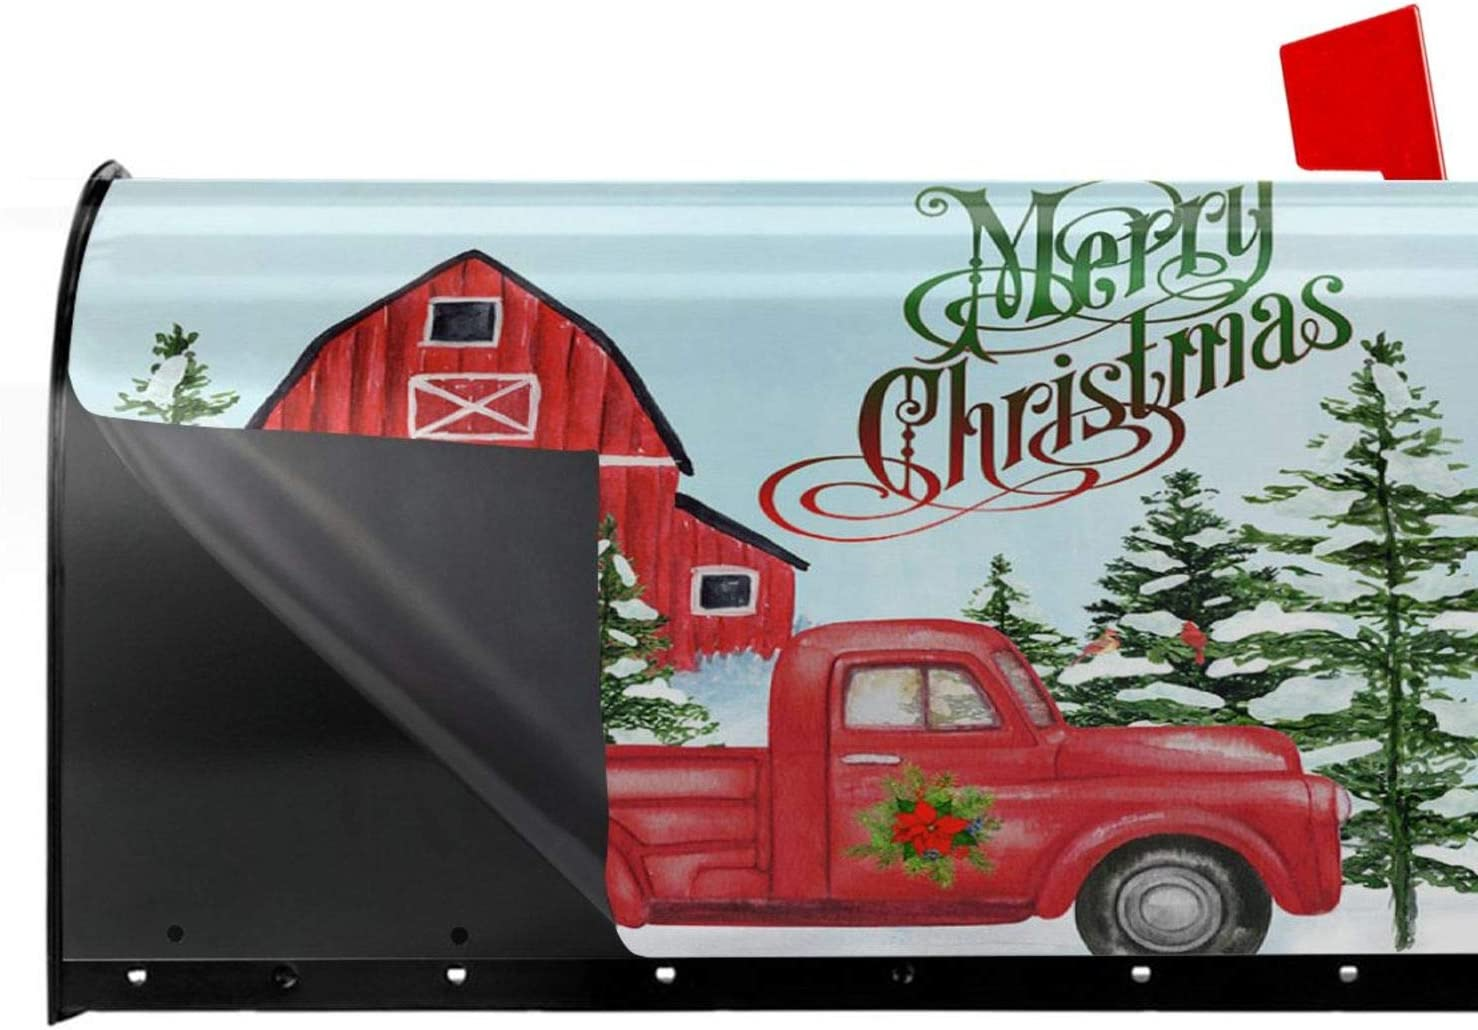 ValueVinylArt Fun Red Truck /& Red Barn Christmas PVC Mailbox Covers Standard Size Fun Red Truck /& Red Barn Christmas Mail Wraps Cover Letter Post Box 21x18 in